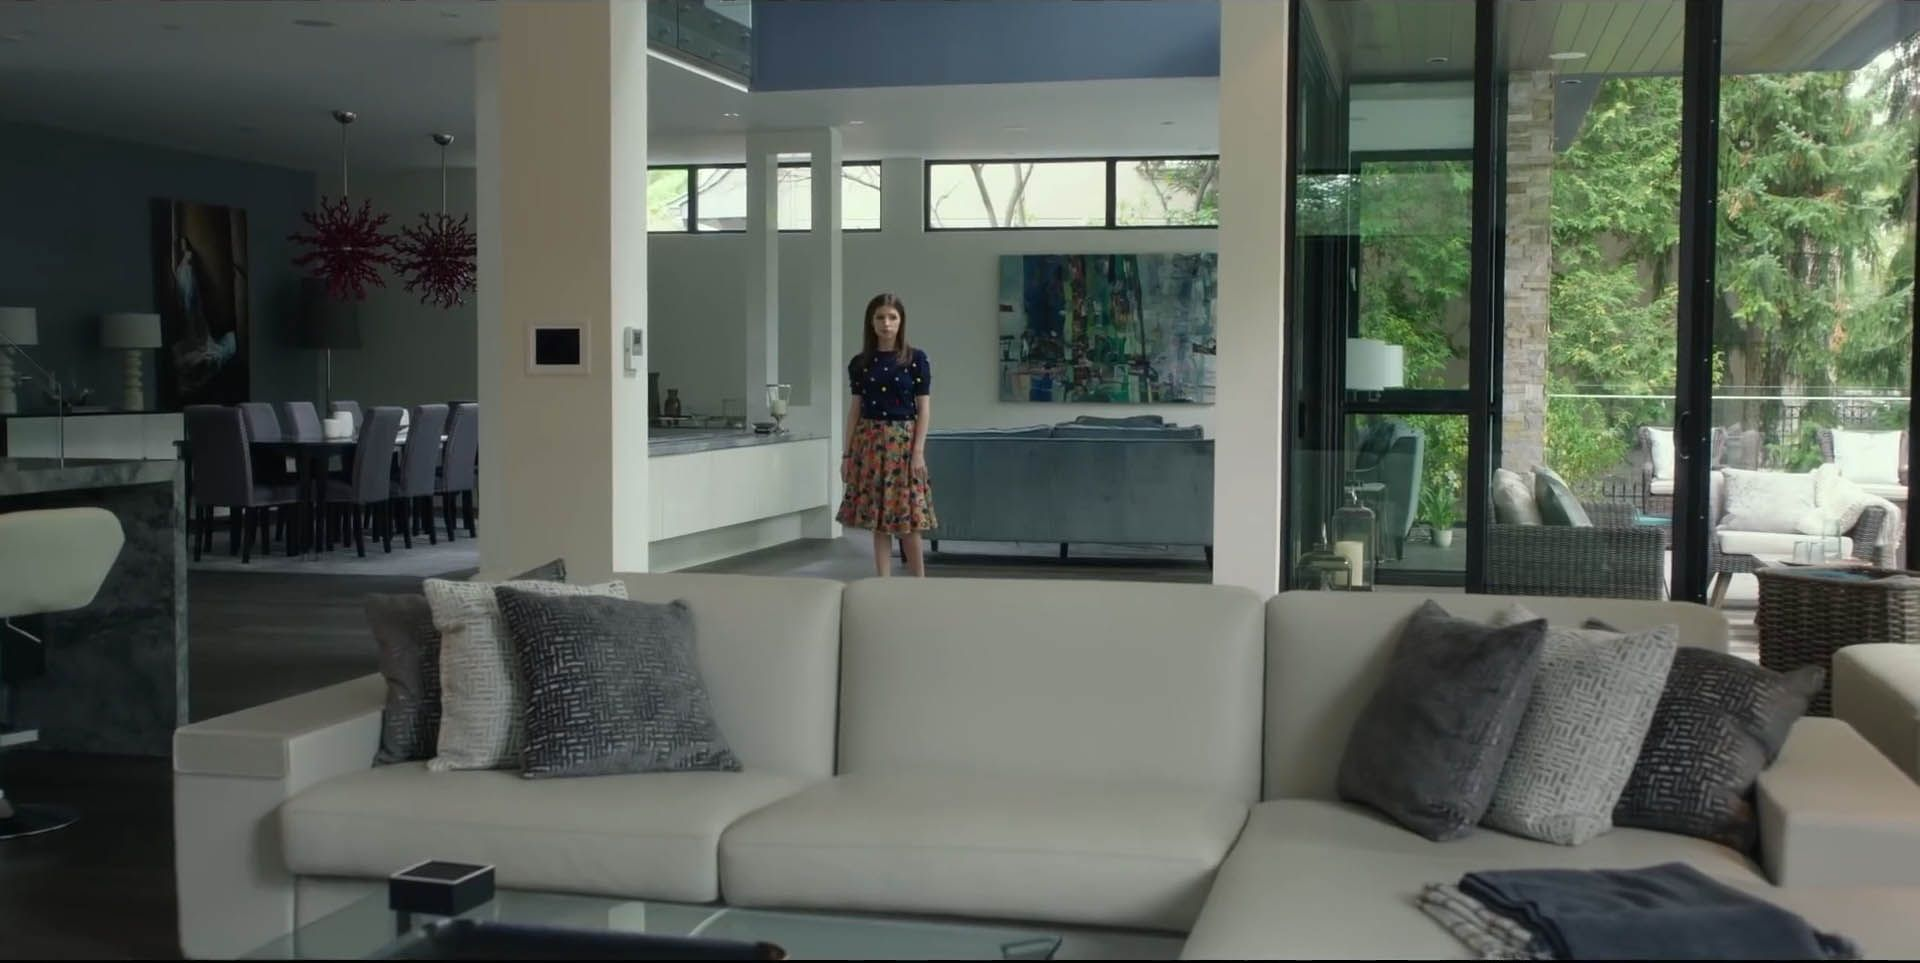 Image Result For A Simple Favor House House Decor Modern